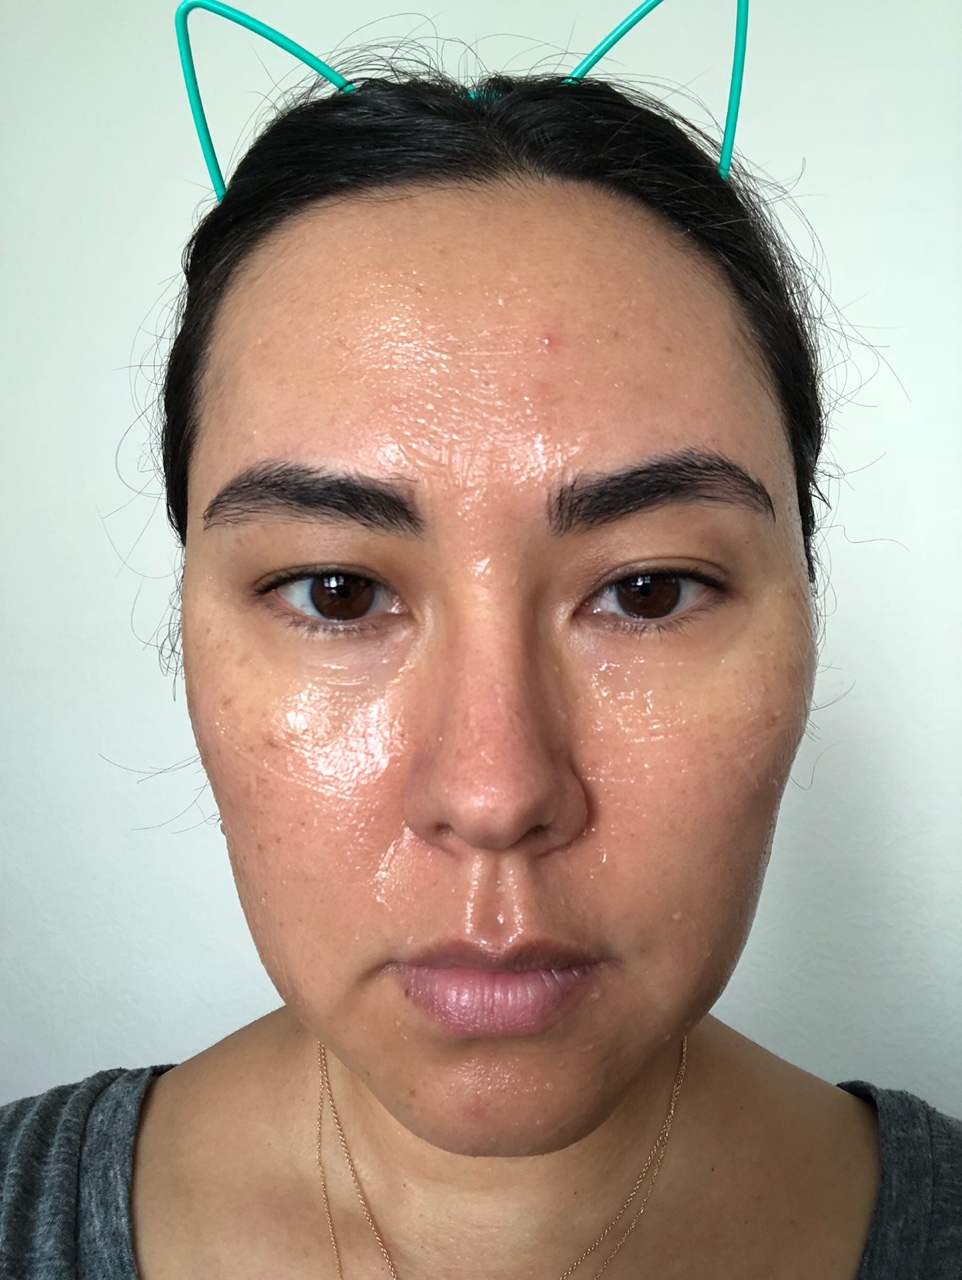 Just applied. There's a bit of stinging around my nose and lips, but I got aggressive with the exfoliation in those areas. I also applied more gel on my neck & under-eye than the last time around. -